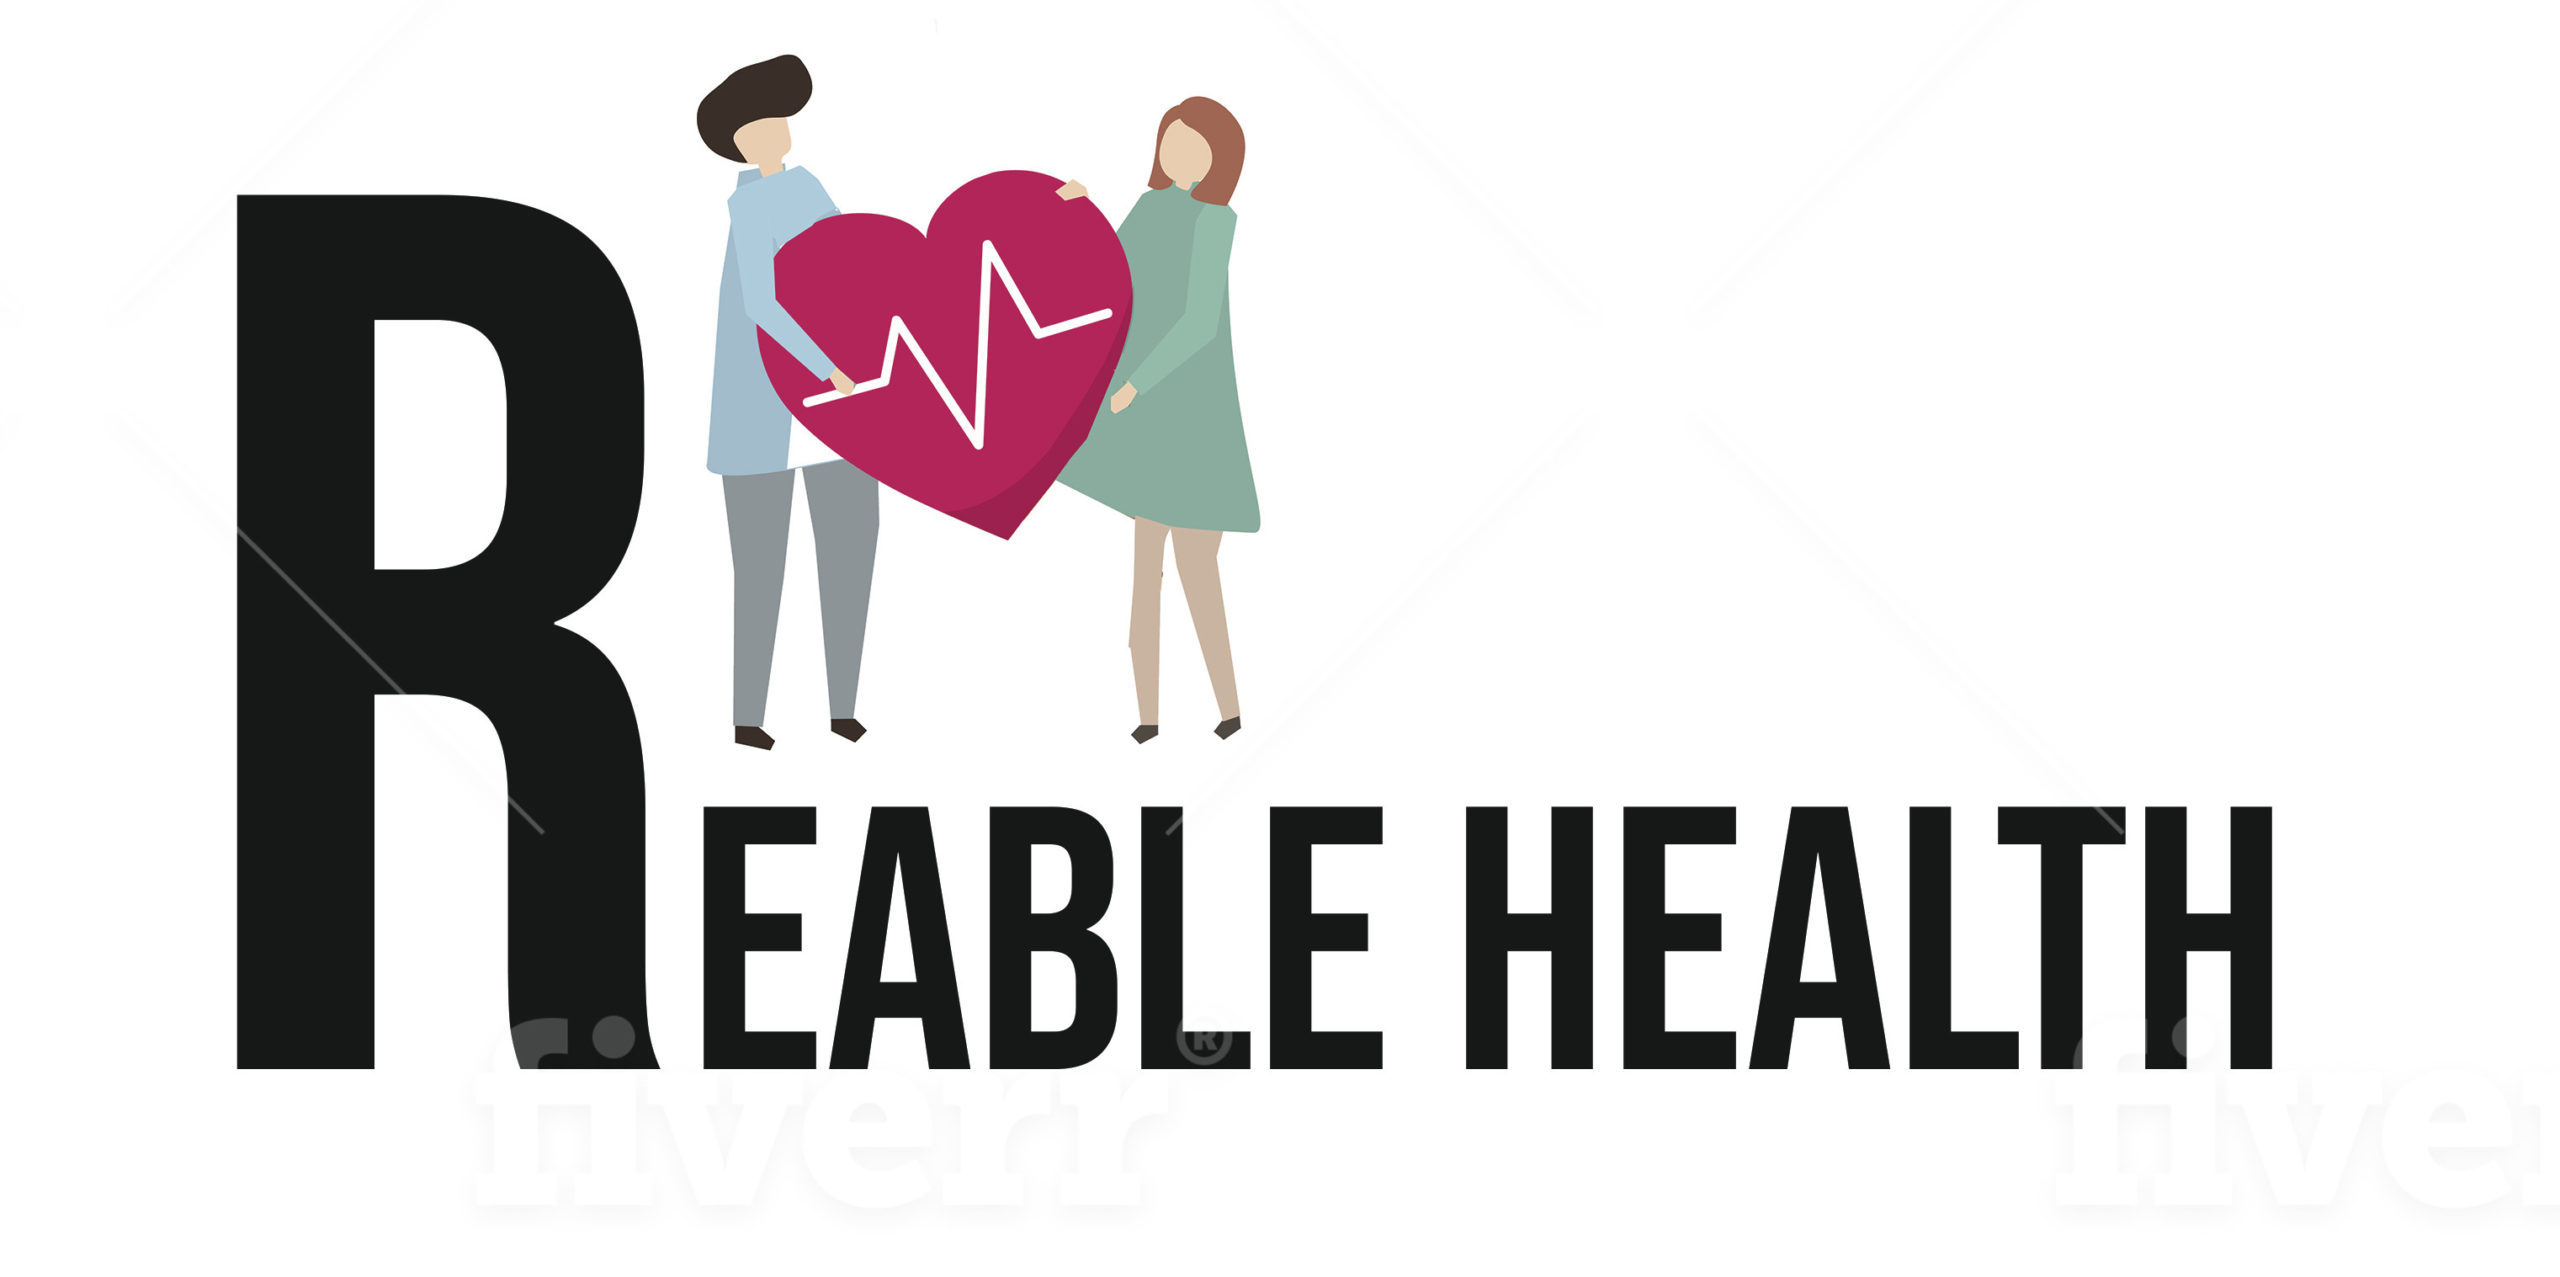 Reable health